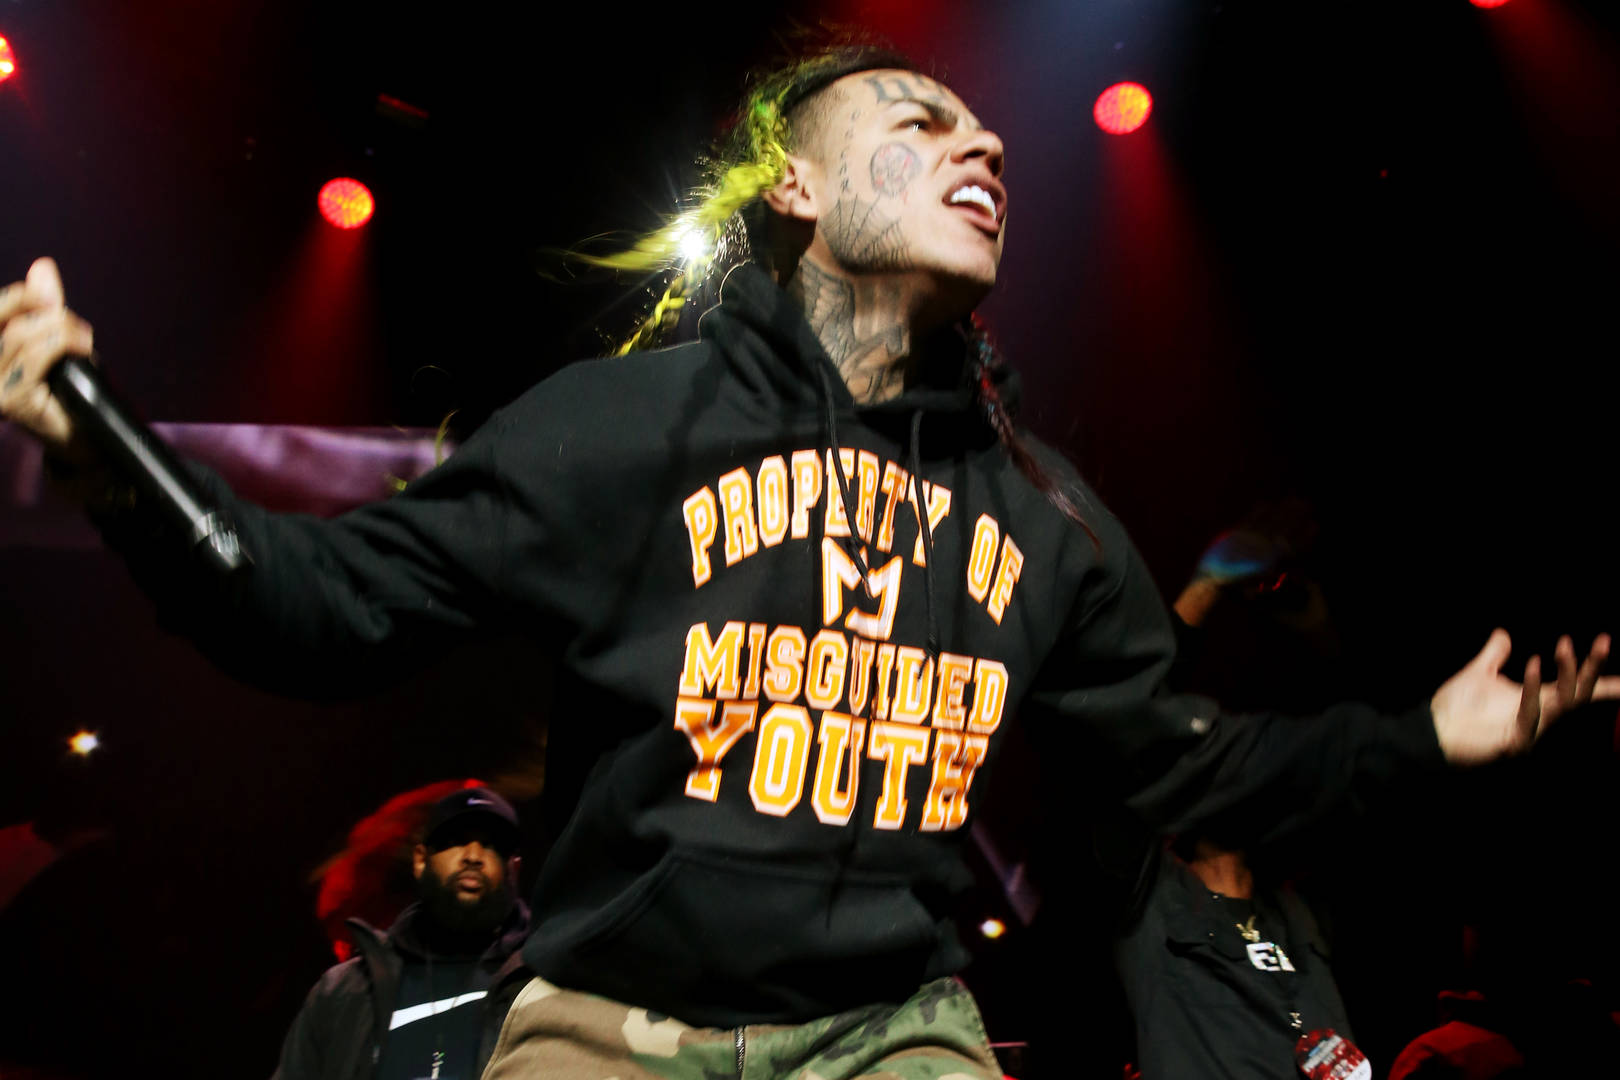 6ix9ine Makes G Herbo His Latest Sparring Partner